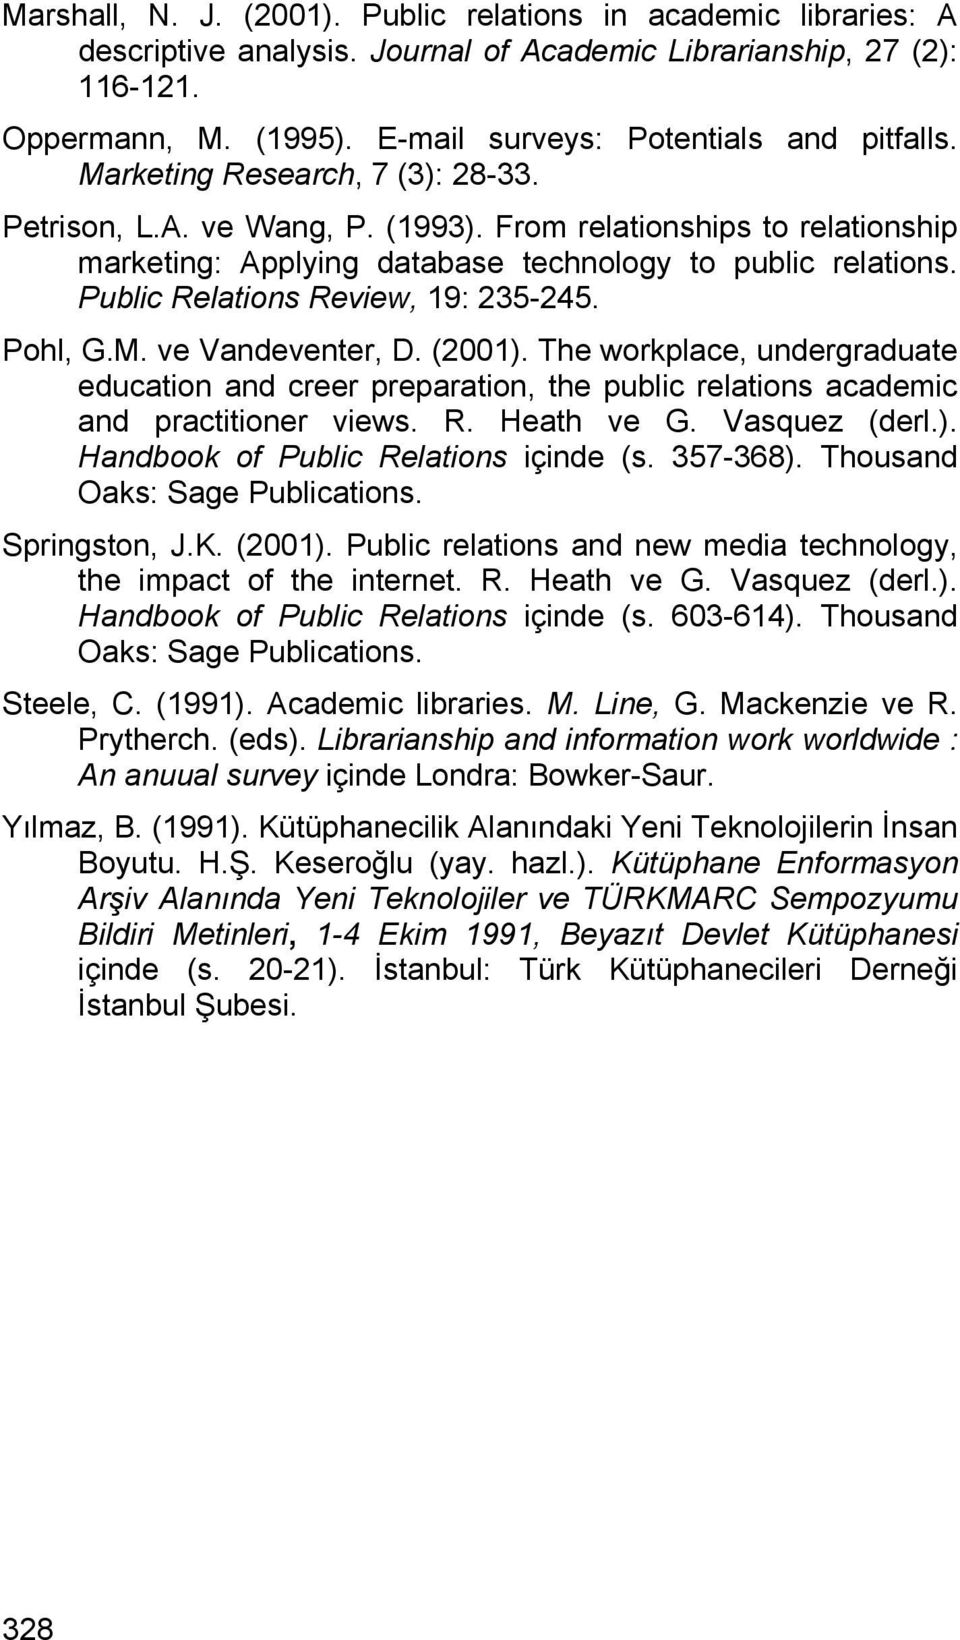 From relationships to relationship marketing: Applying database technology to public relations. Public Relations Review, 19: 235-245. Pohl, G.M. ve Vandeventer, D. (2001).